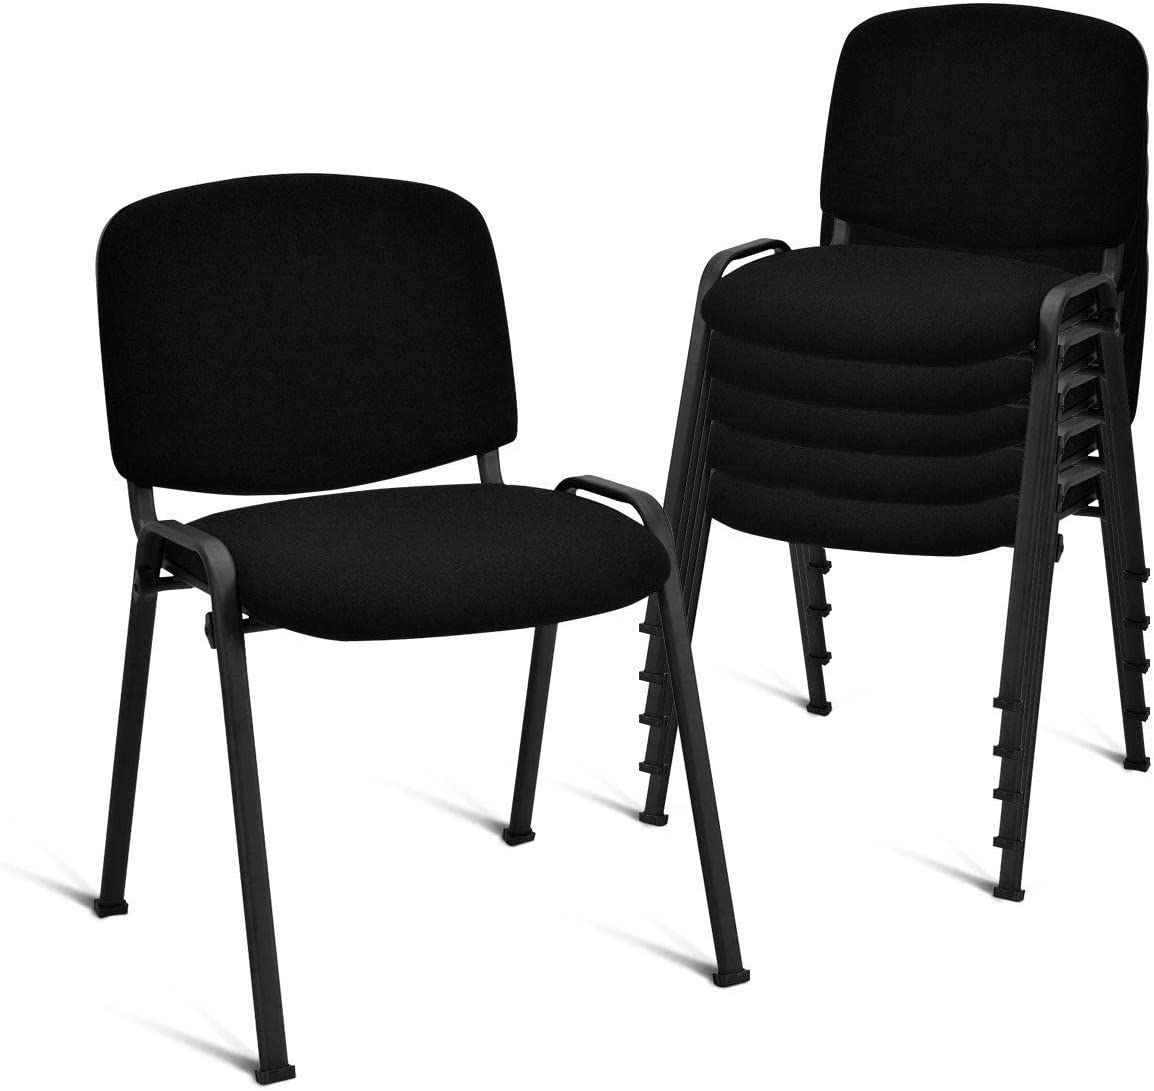 Giantex Set of 5 Conference Chair Elegant Design Office Waiting Room Guest Reception  sc 1 st  Amazon.com & Office Guest u0026 Reception Chairs | Shop Amazon.com